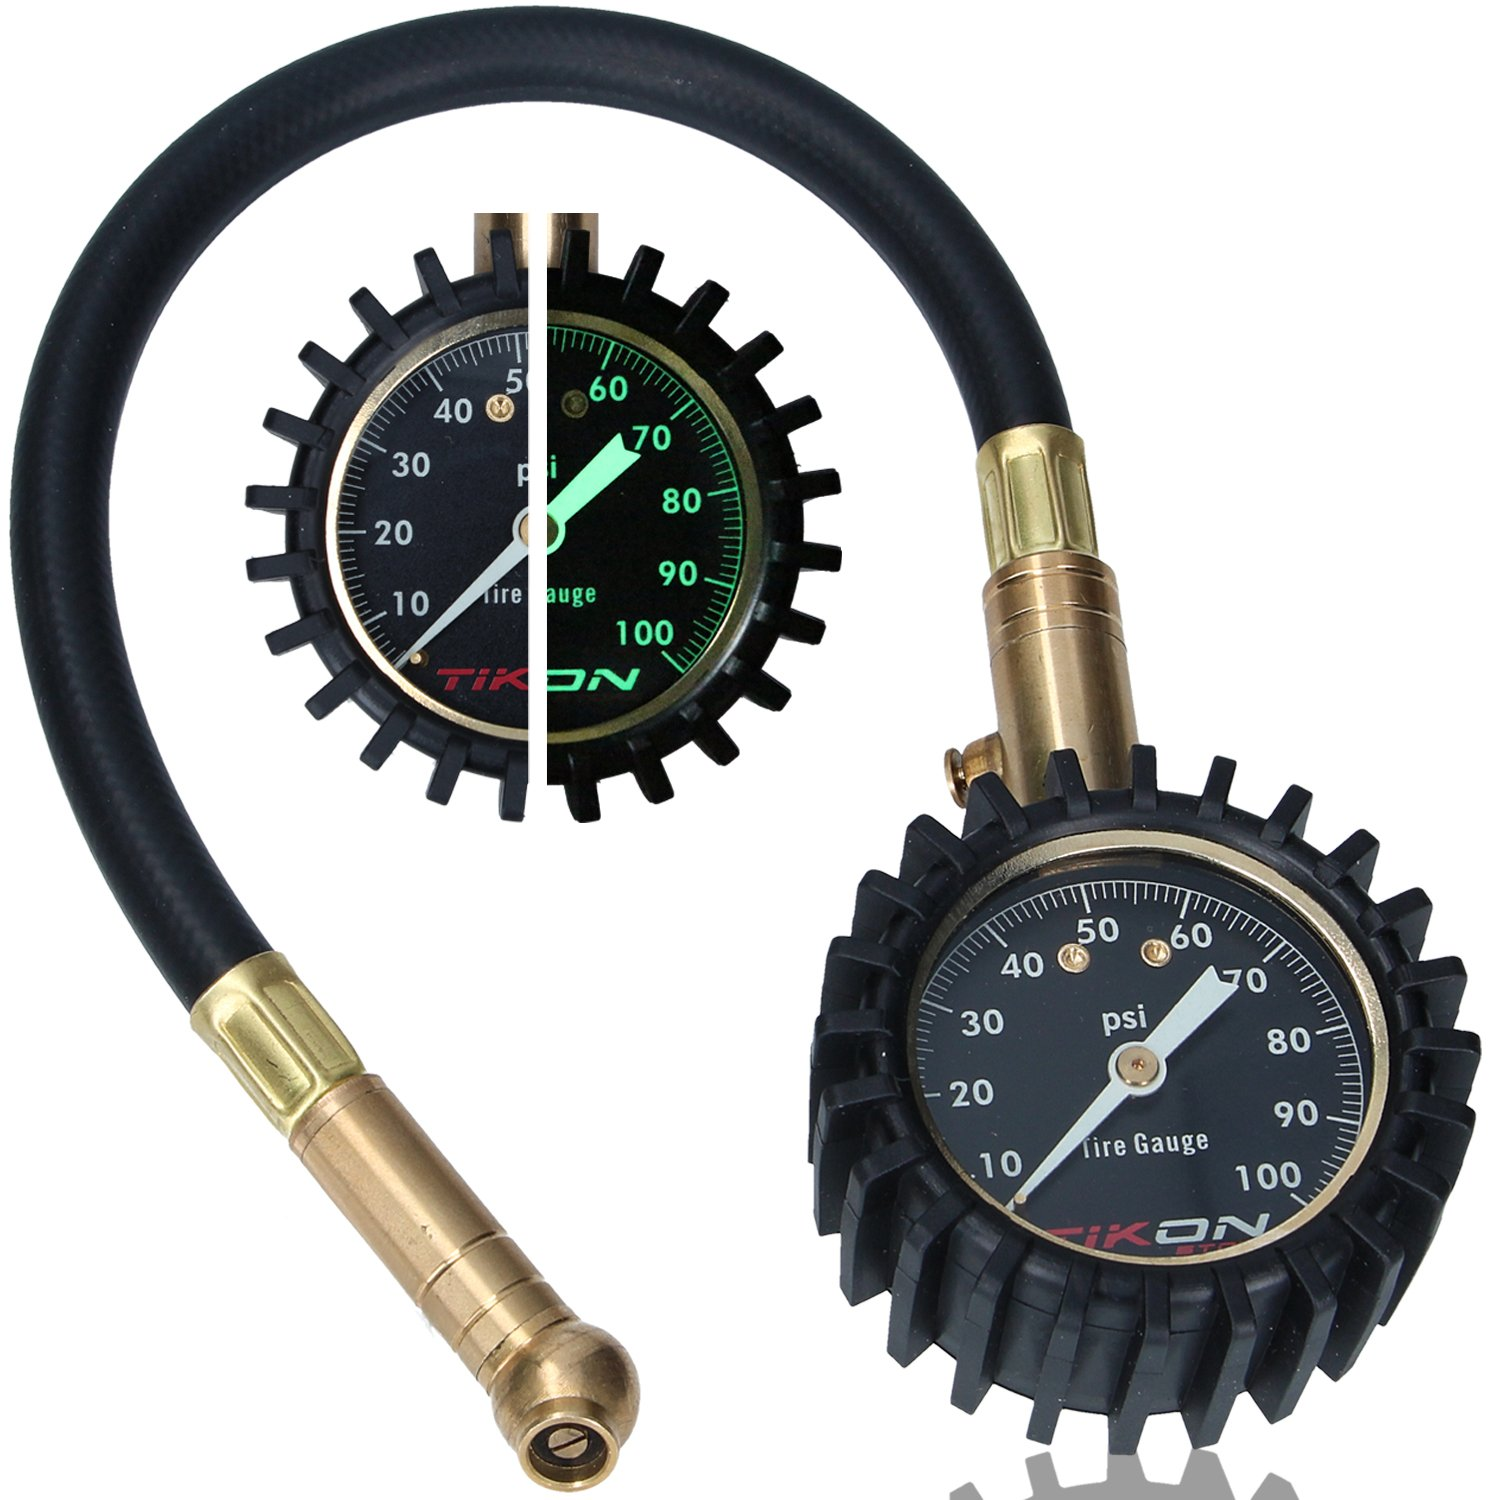 Tire Pressure Gauge (0-100 psi) for Car Auto Motorcycle Truck RV ATV